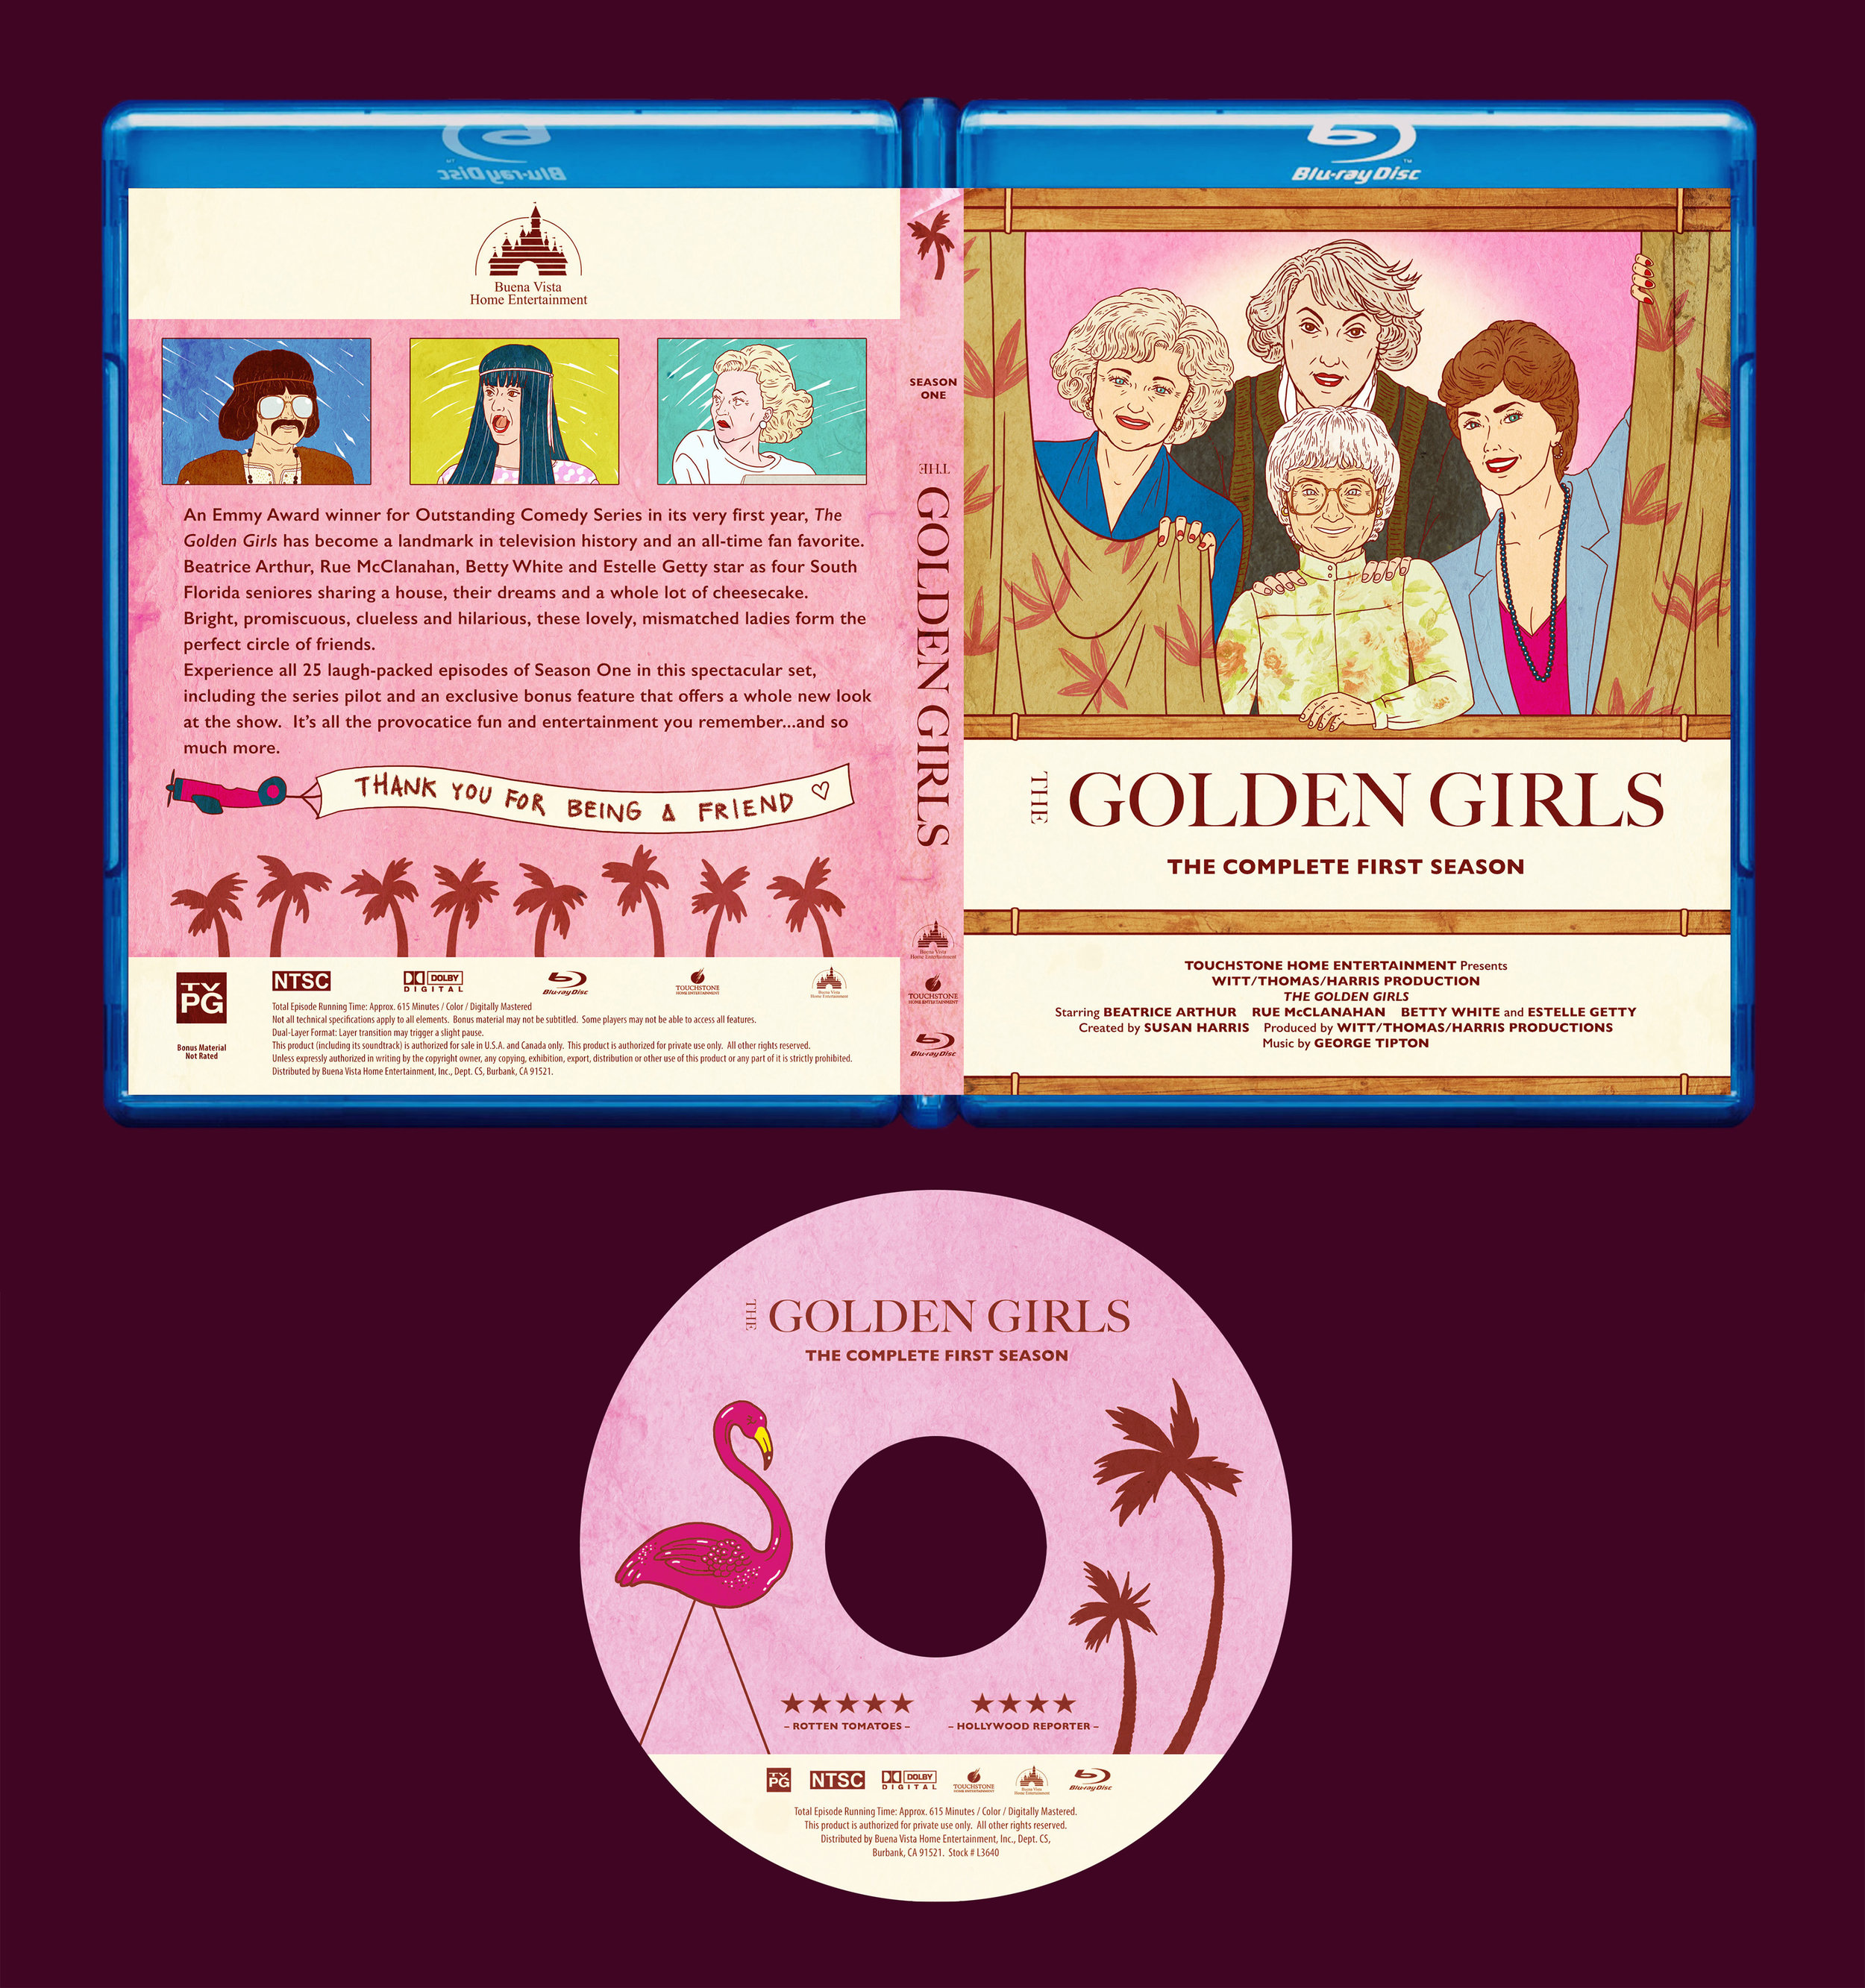 MINI-SYS.COM Shirley Susilo golden girls 1 bluray packaging disc label design square.jpg